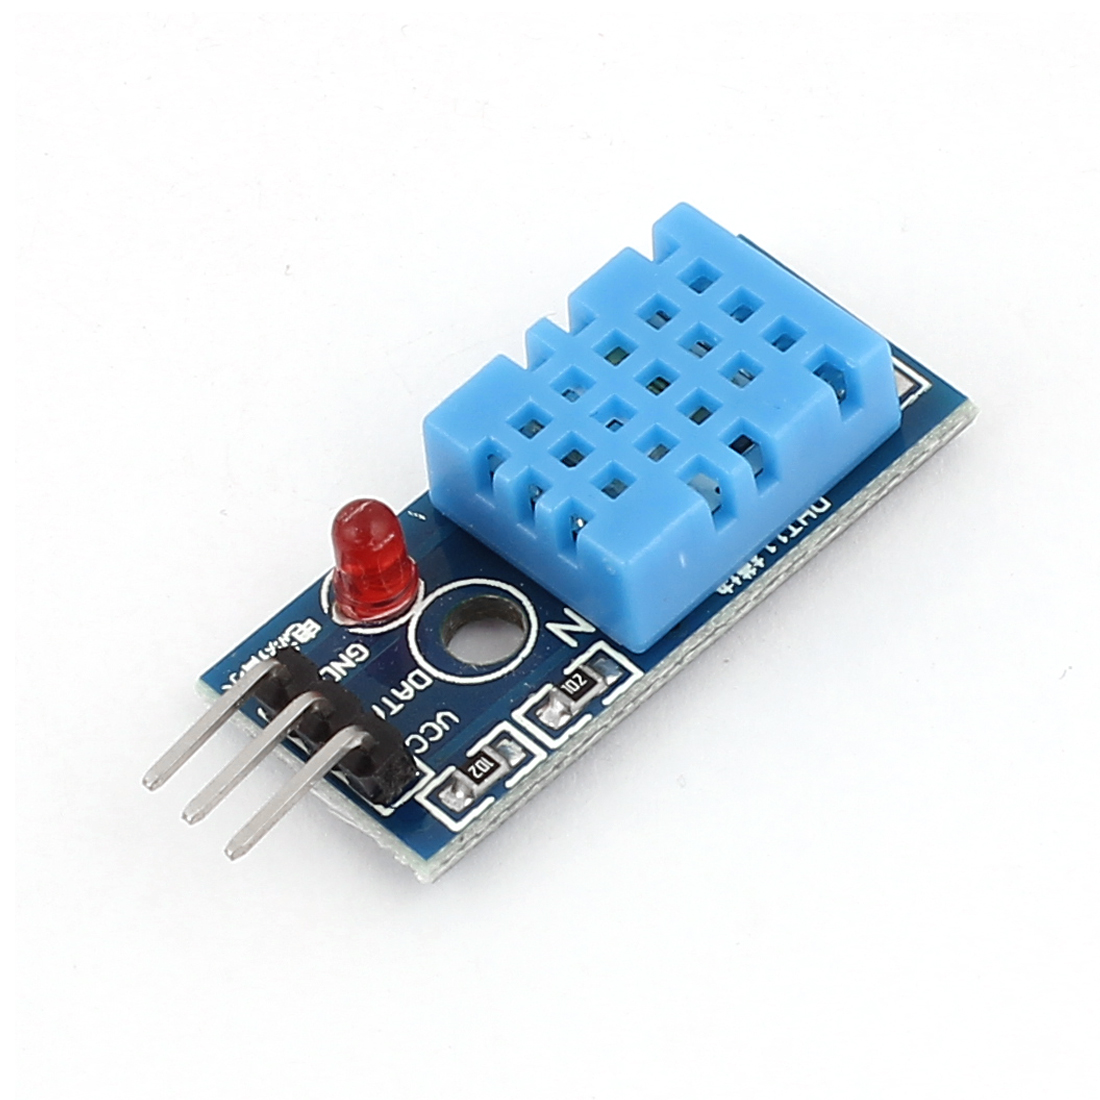 DC 3.3V-5.5V 3Pin Digital Temperature Humidity Sensor for Module Board